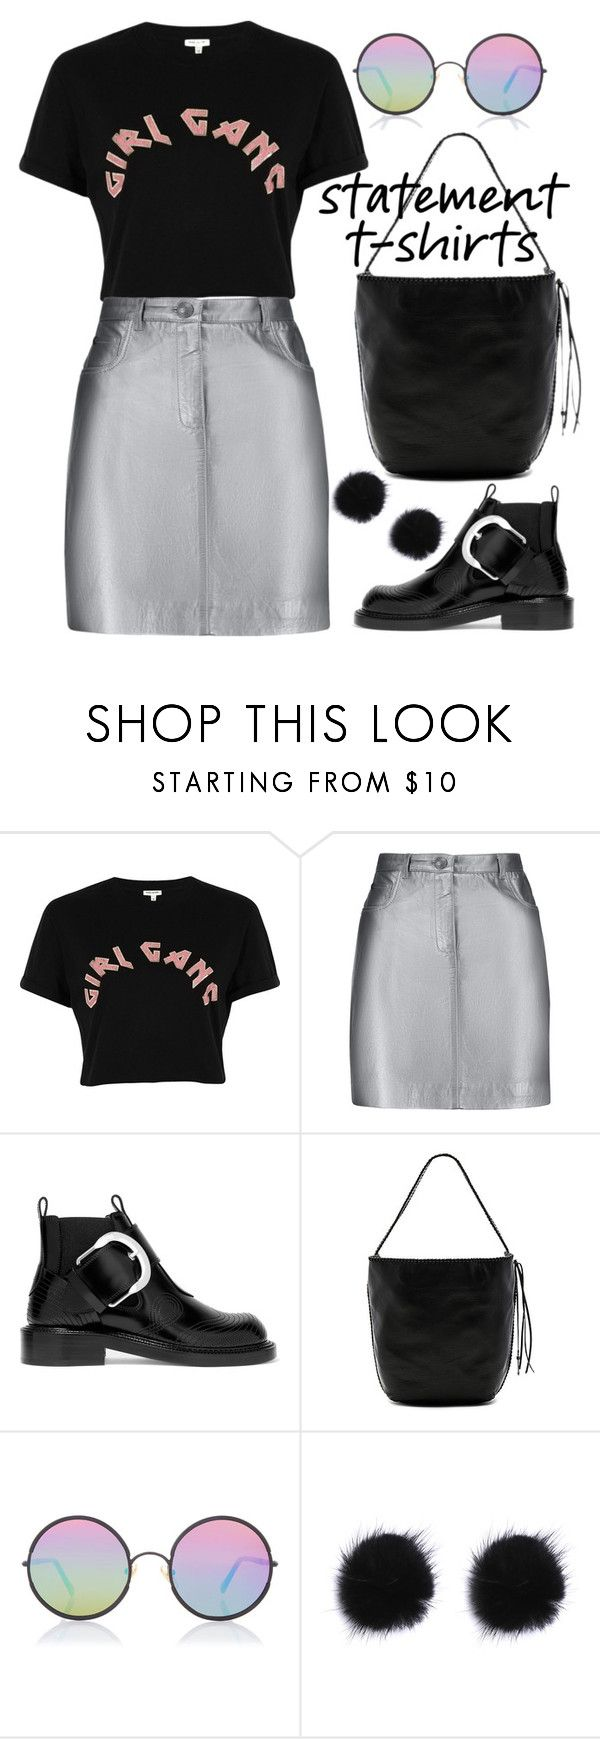 """""""Say What: Statement T-Shirts"""" by joslynaurora ❤ liked on Polyvore featuring River Island, Pierre Balmain, Maison Margiela, Mackage, Sunday Somewhere, skirt, Boots, shirt, Tshirt and statementtshirt"""